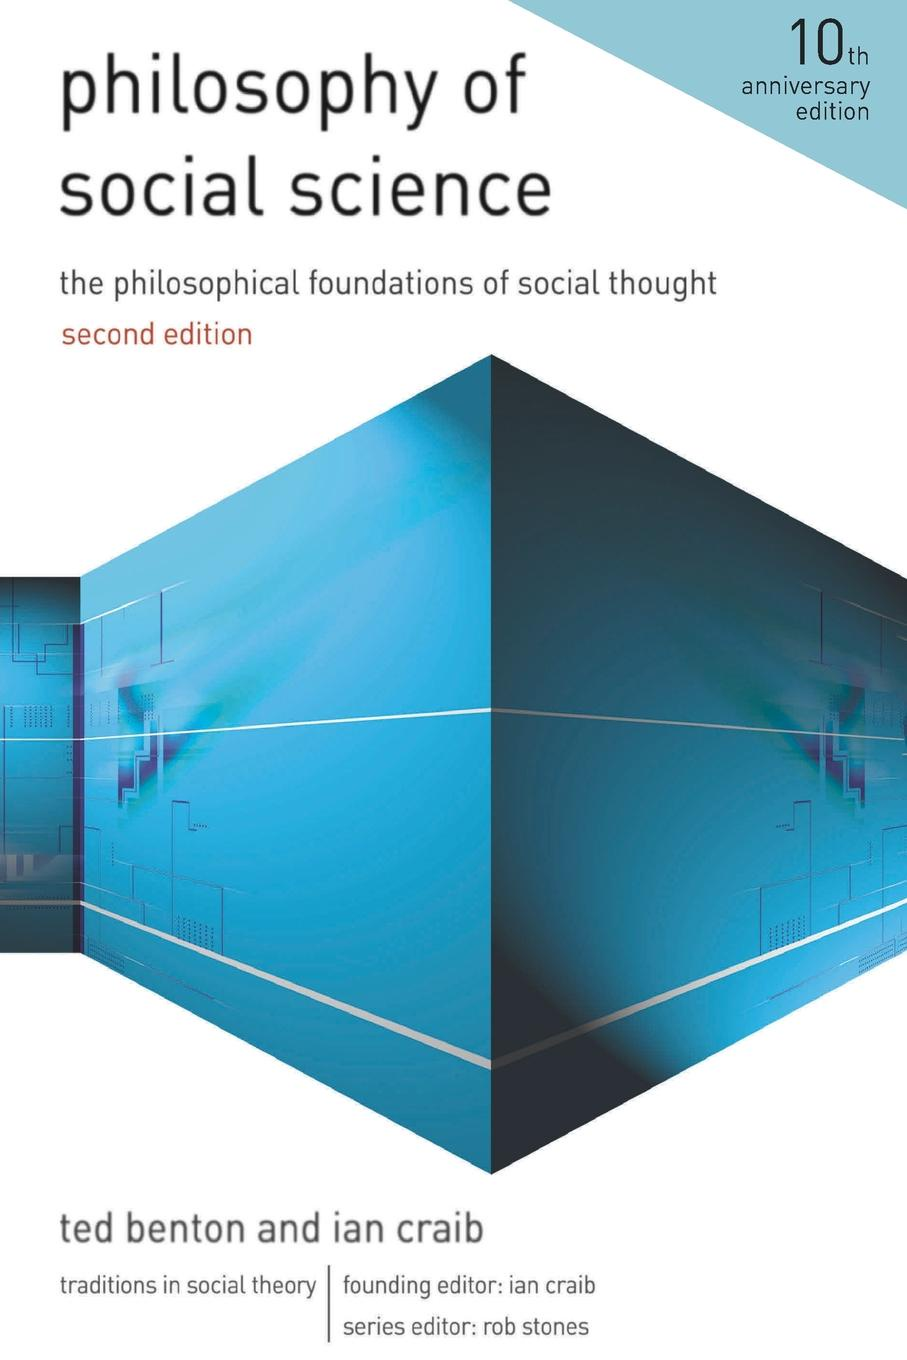 Ted Benton, Ian Craib Philosophy of Social Science. The Philosophical Foundations of Social Thought ted benton ian craib philosophy of social science the philosophical foundations of social thought